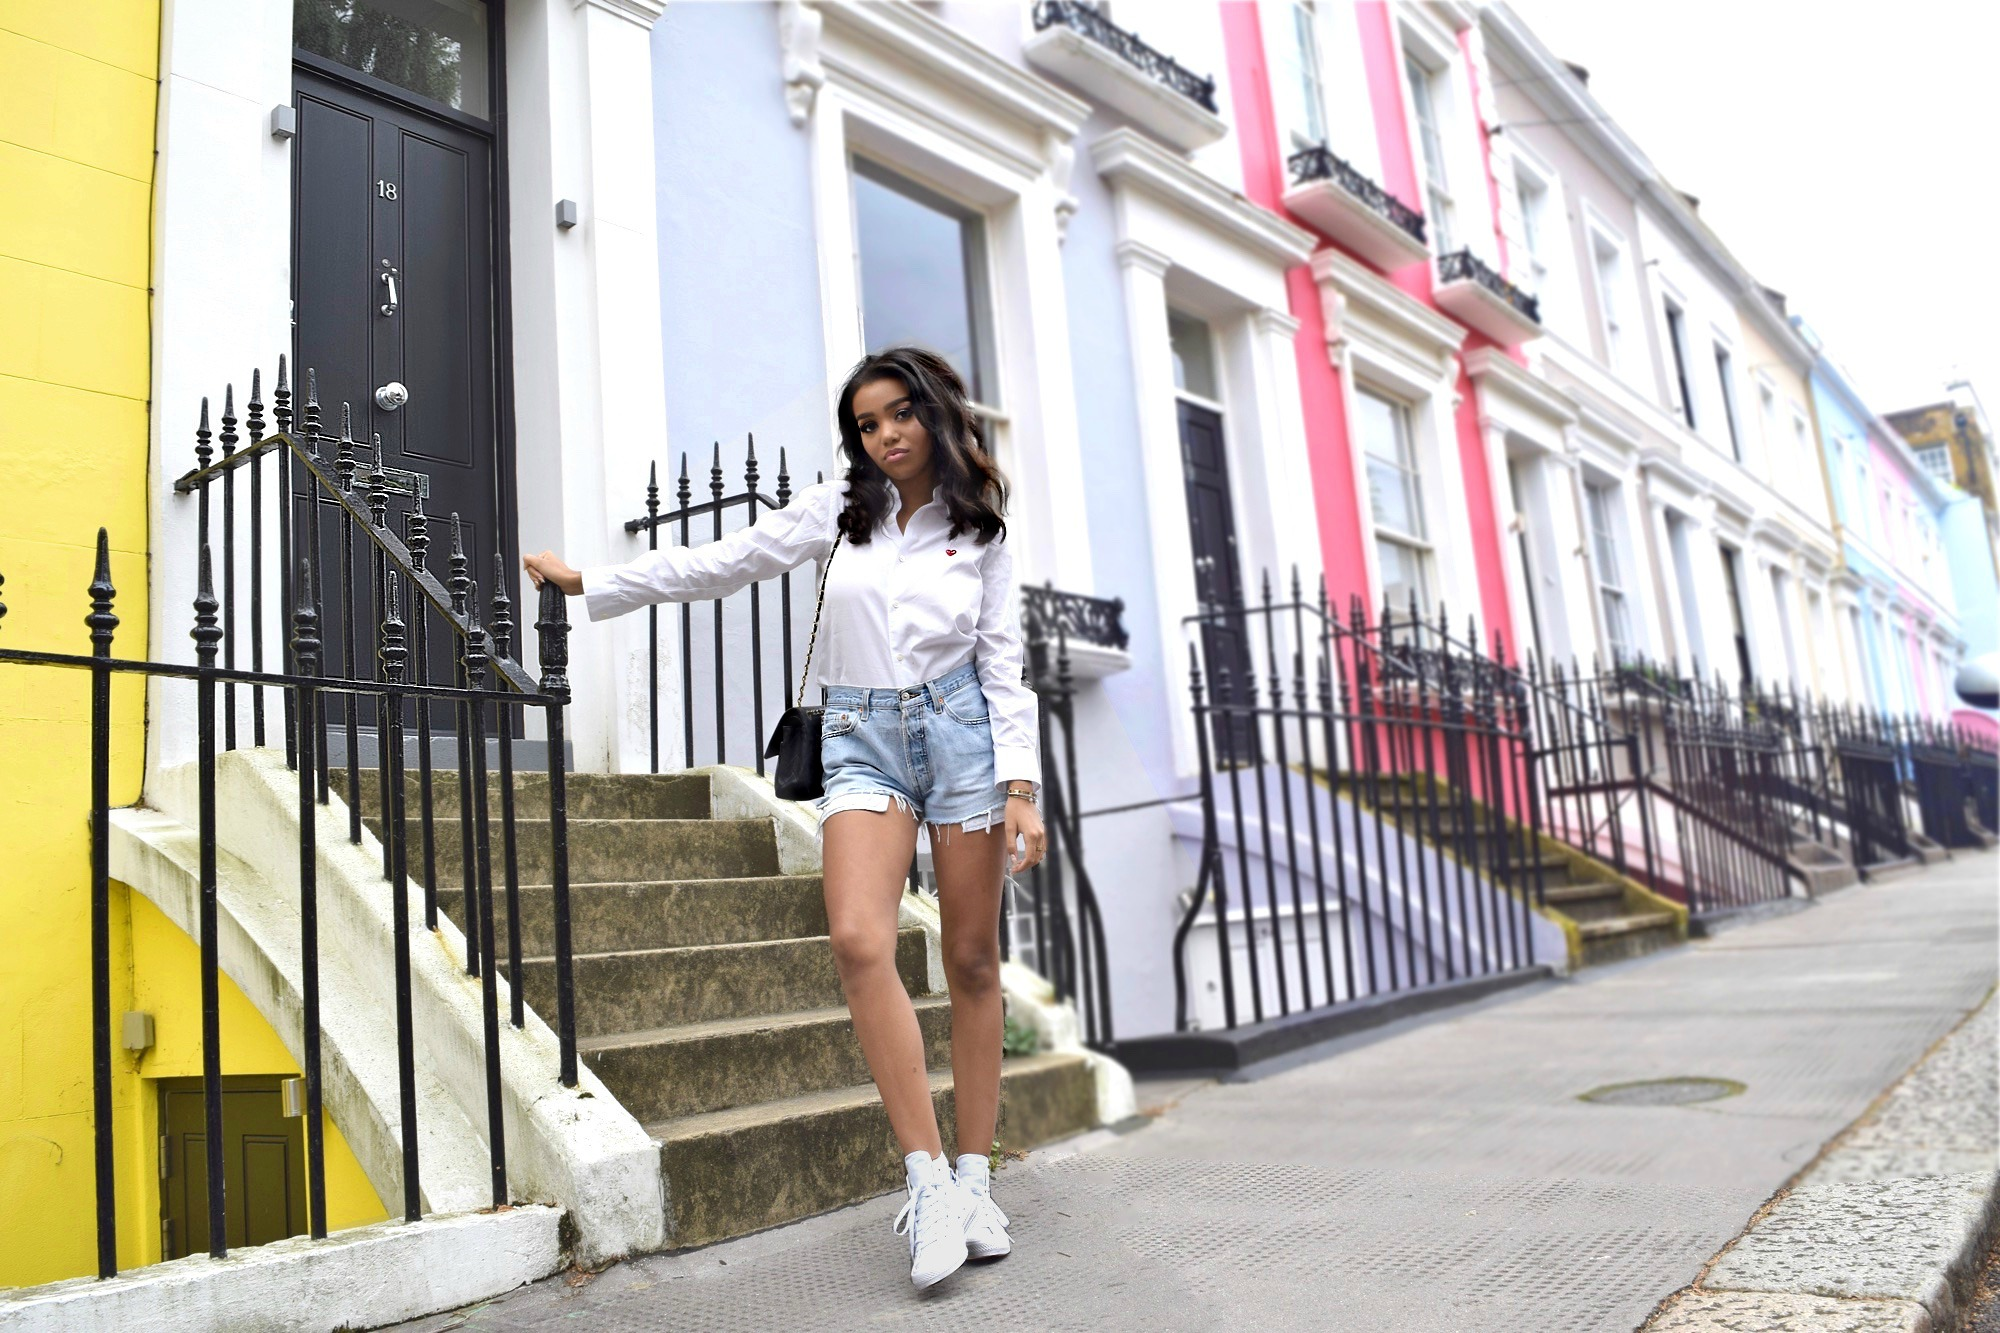 Notting Hill // Chelsea London, England // London Travel Diary // Re Done Denim Shorts // Comme De Garcons Play Button Up Blouse // Zara Leather Jacket // Chanel Classic Flap Bag // All White Chuck Taylor All Star Converse // Los Angeles Fashion Street Style Blogger Daphne Blunt: To Style, With Love